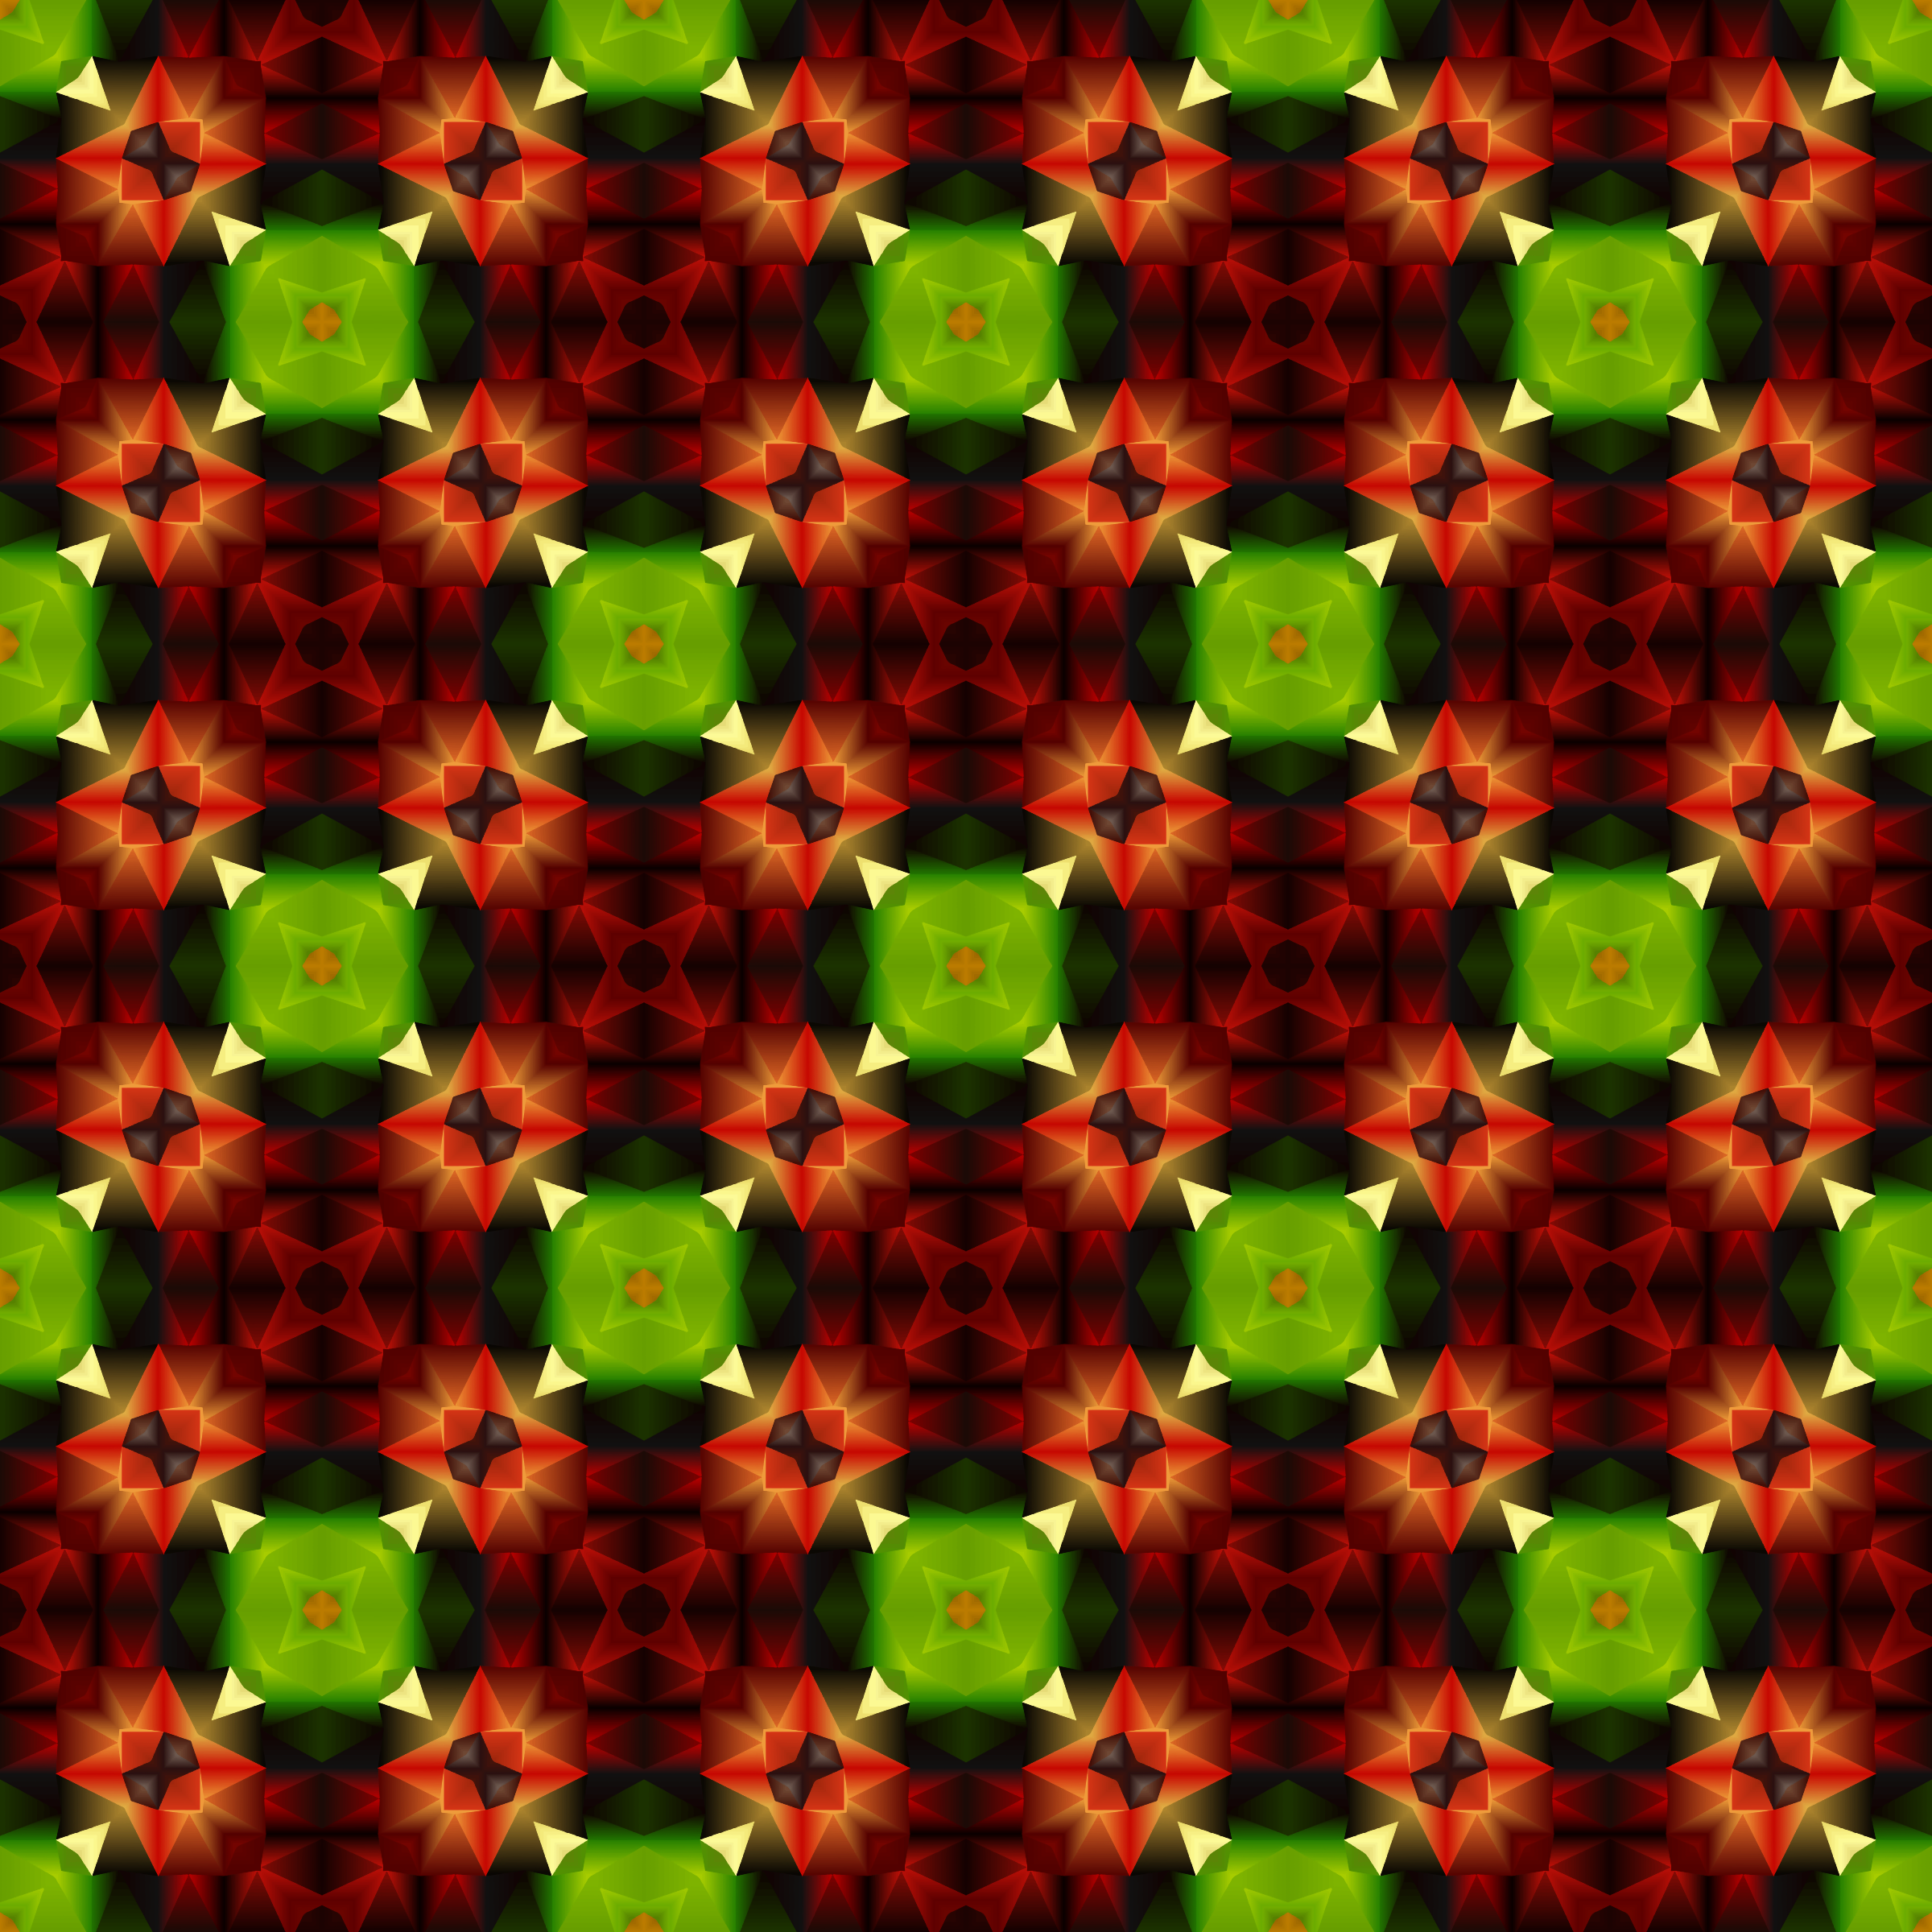 Background pattern 140 by Firkin